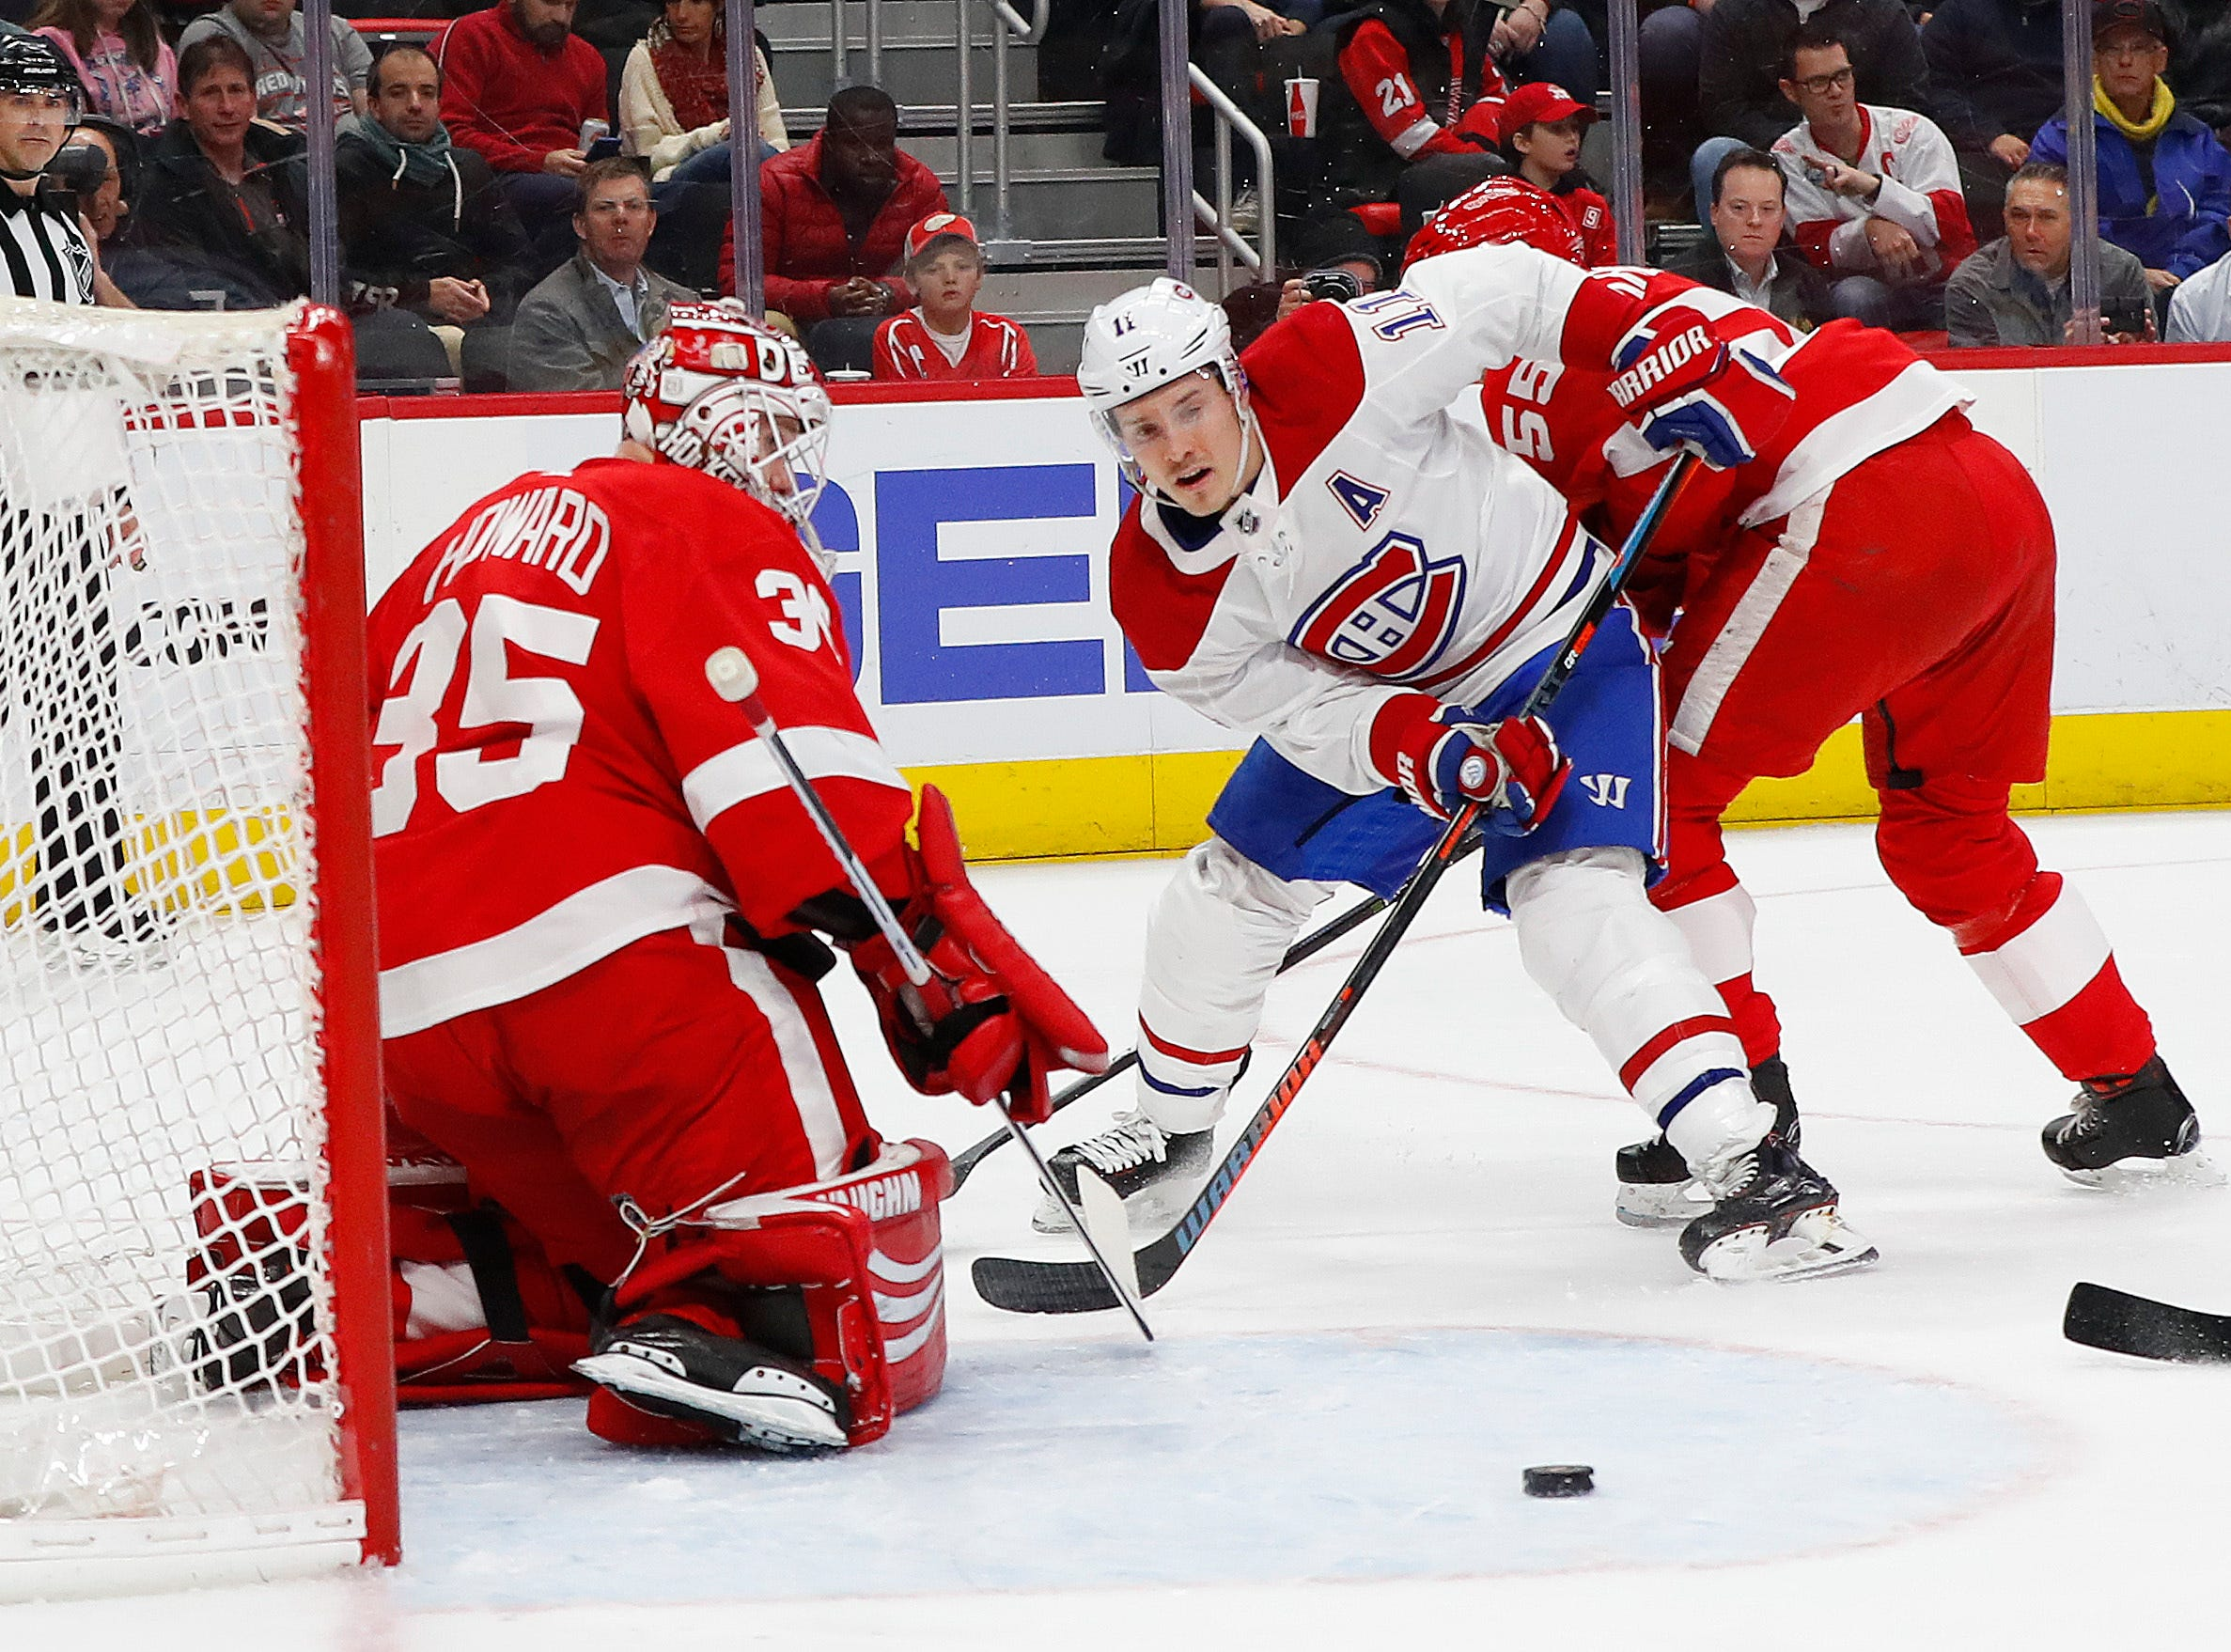 Detroit Red Wings goaltender Jimmy Howard (35) deflects a shot by Montreal Canadiens right wing Brendan Gallagher (11) in the first period.